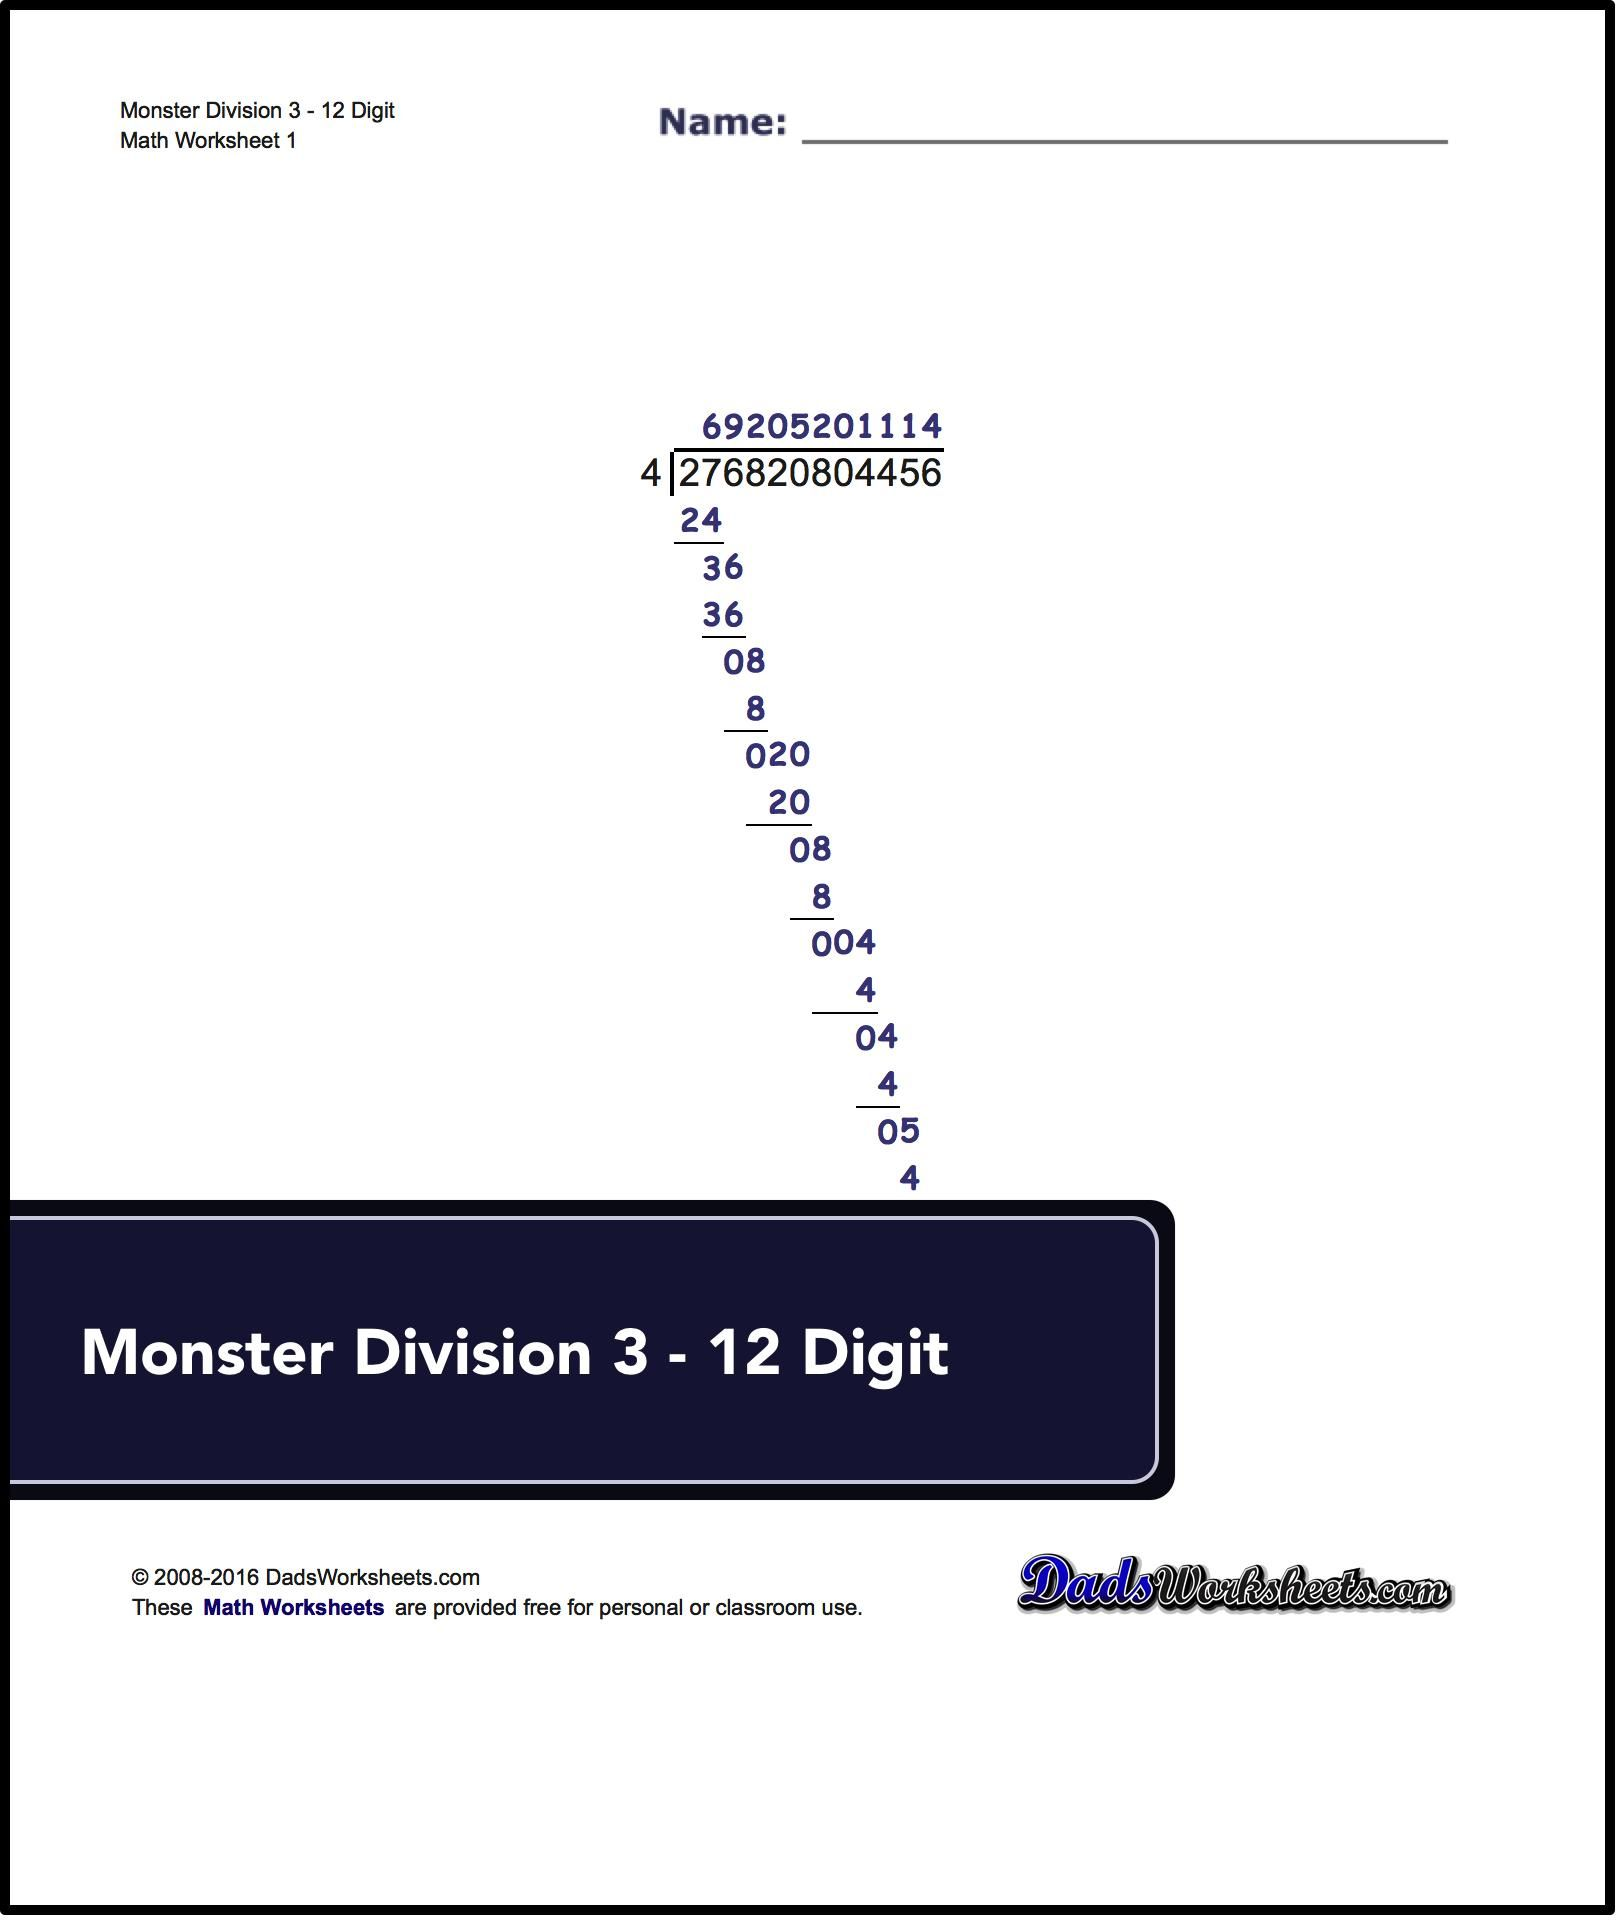 World's longest long division problems worksheets!  >>  <<  #free #printables #math #worksheets #division